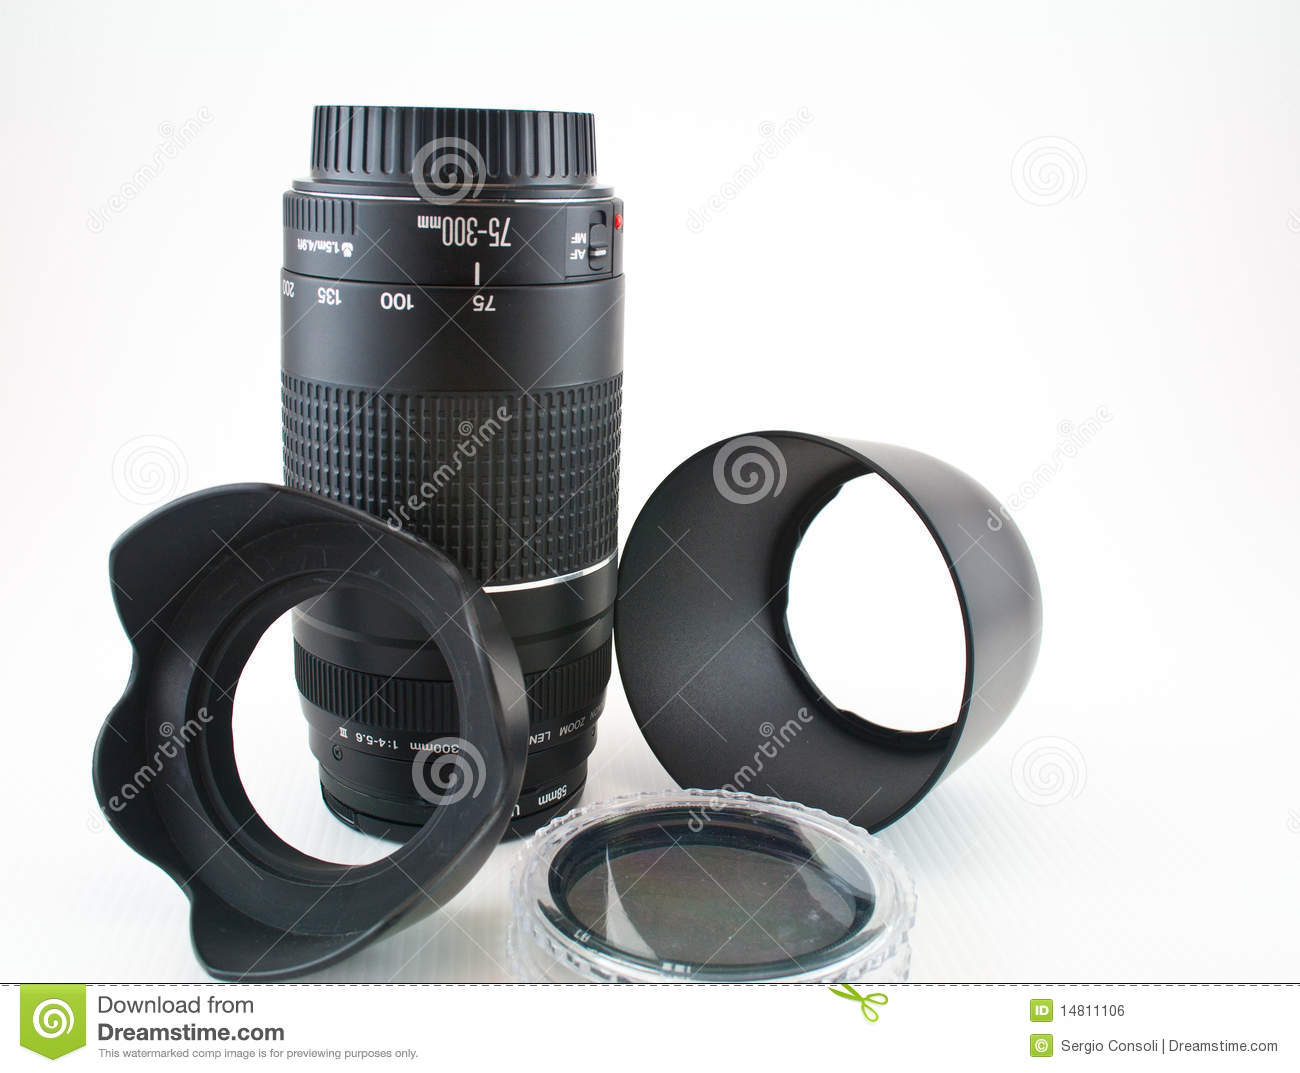 Camera Accessories Royalty Free Stock Image - Image: 14811106